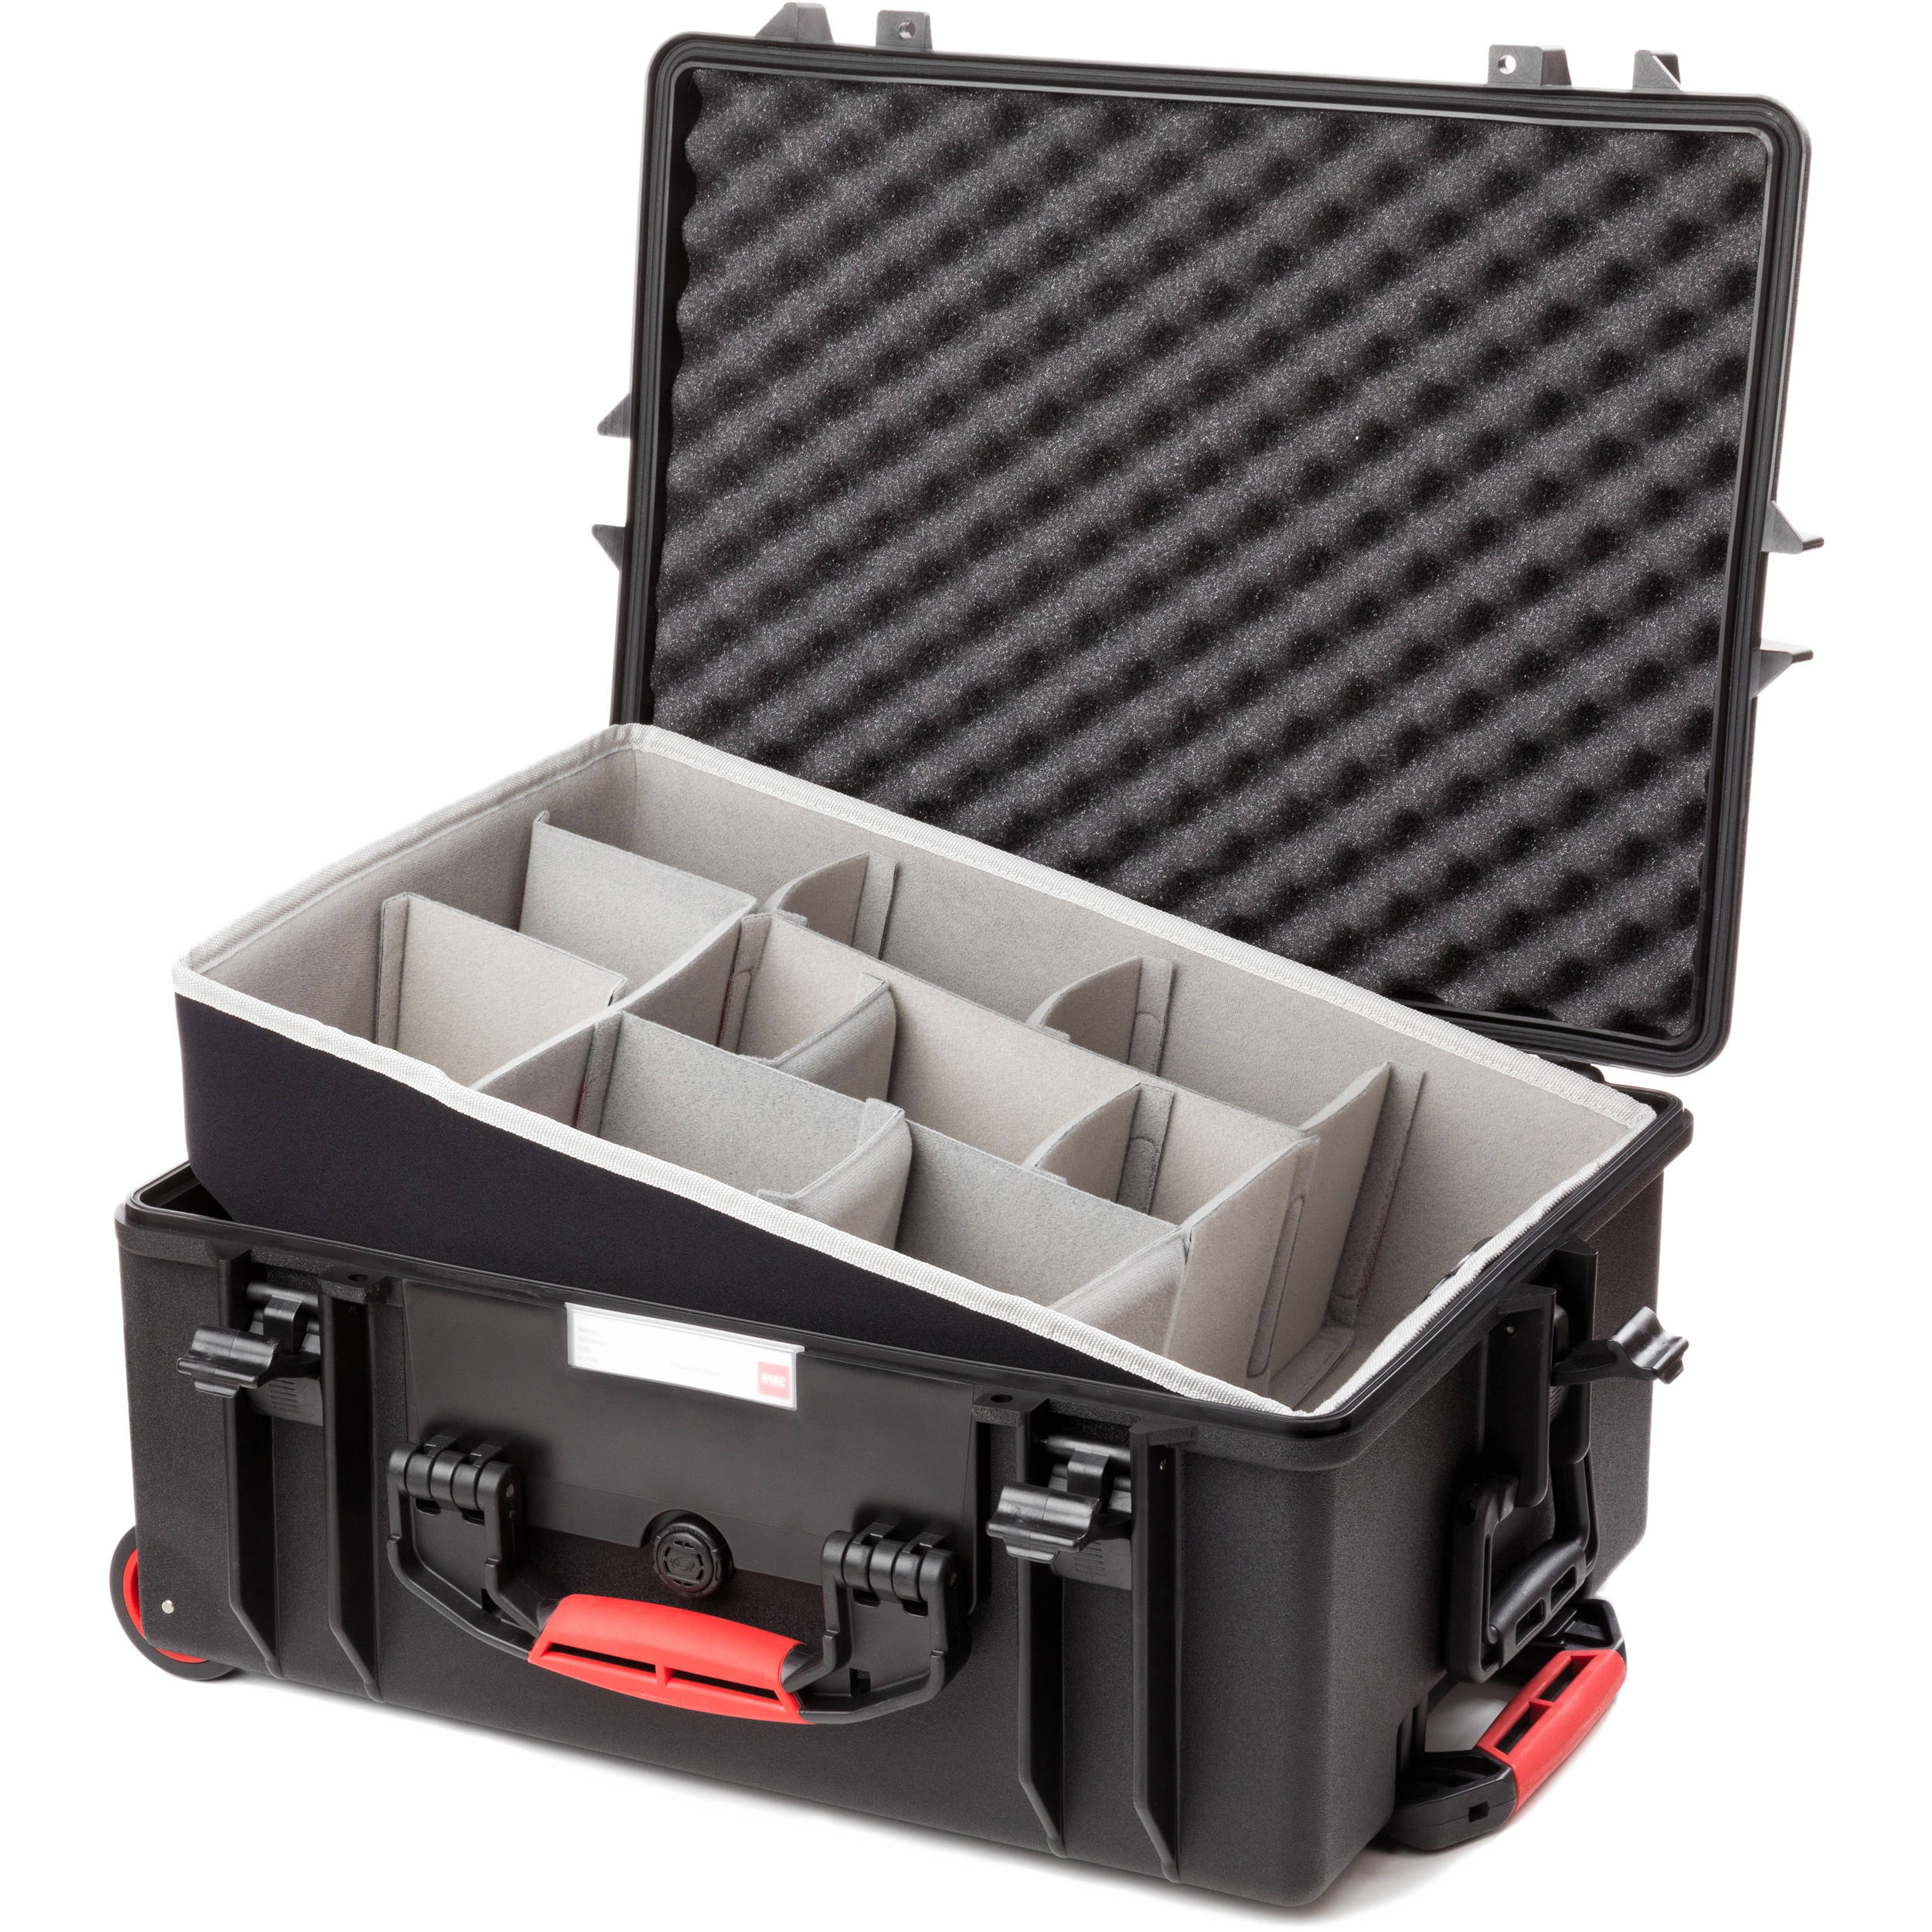 dd6051ecdca5 HPRC 2600W Rolling Resin Case with Second Skin and Dividers Kit